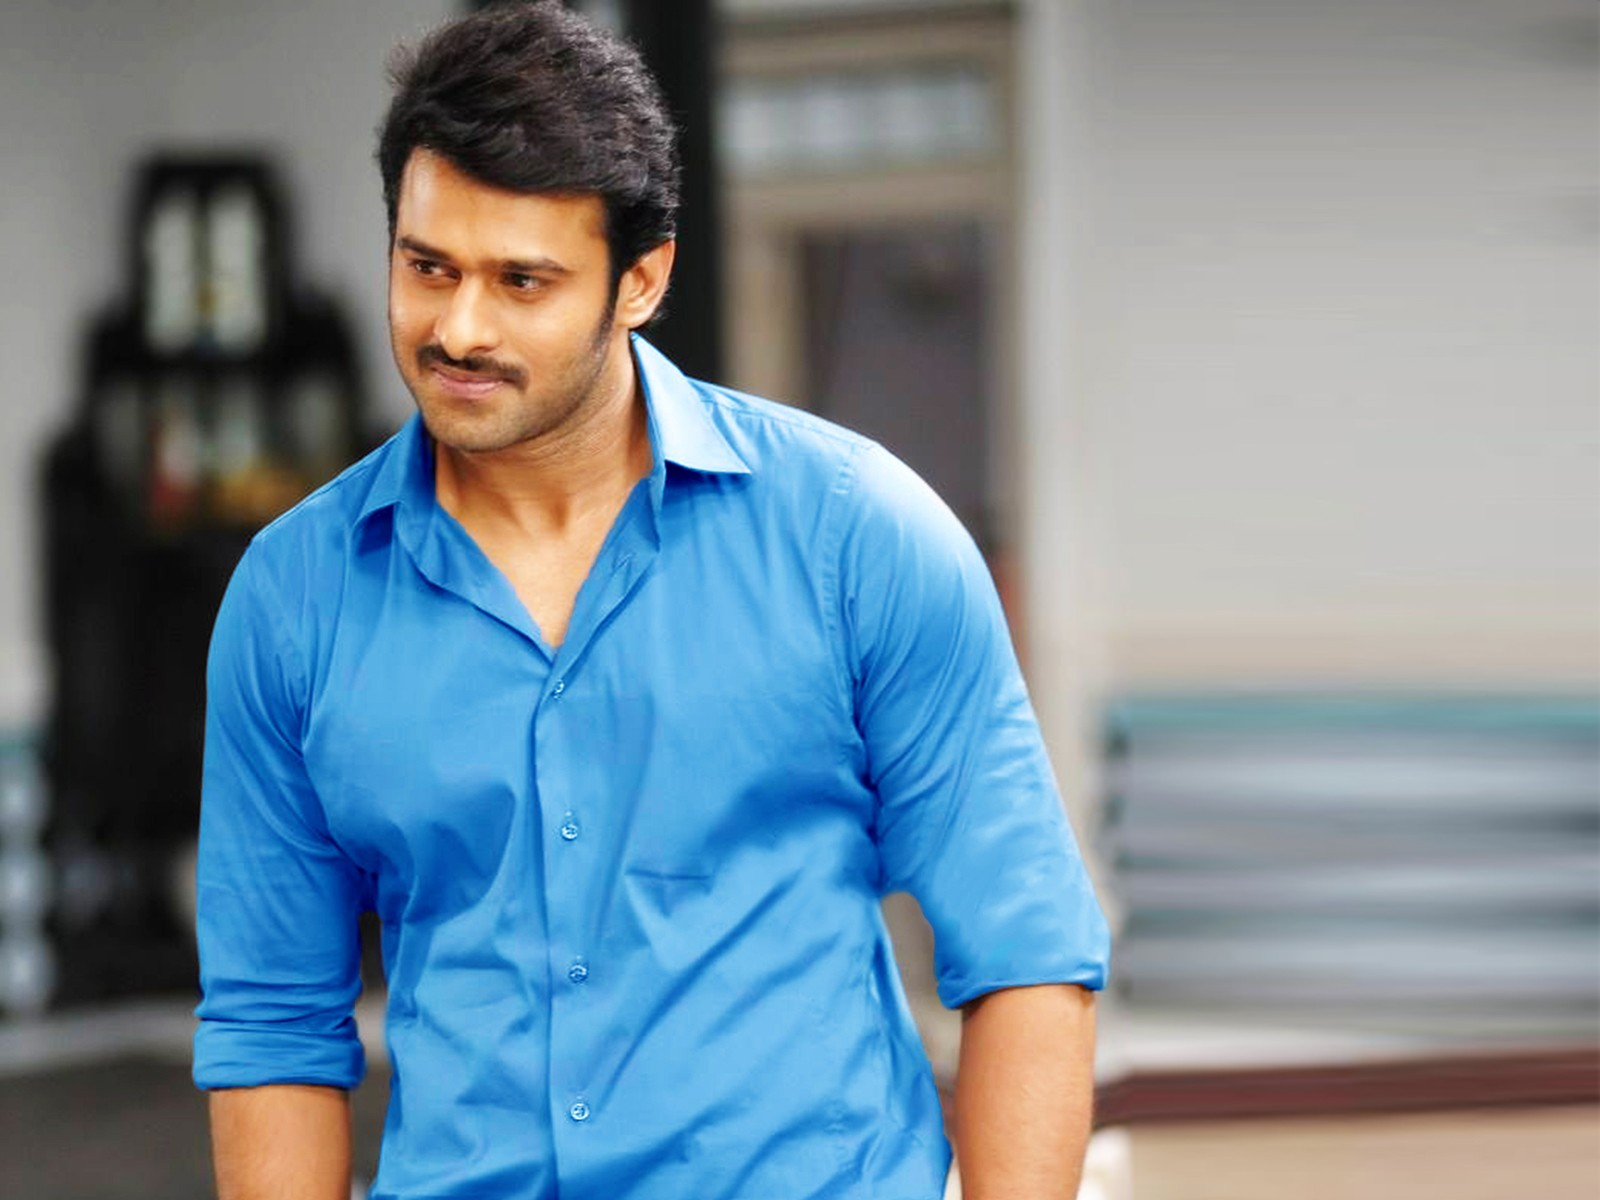 Prabhas Wallpapers Download: Prabhas Wallpapers High Resolution And Quality Download